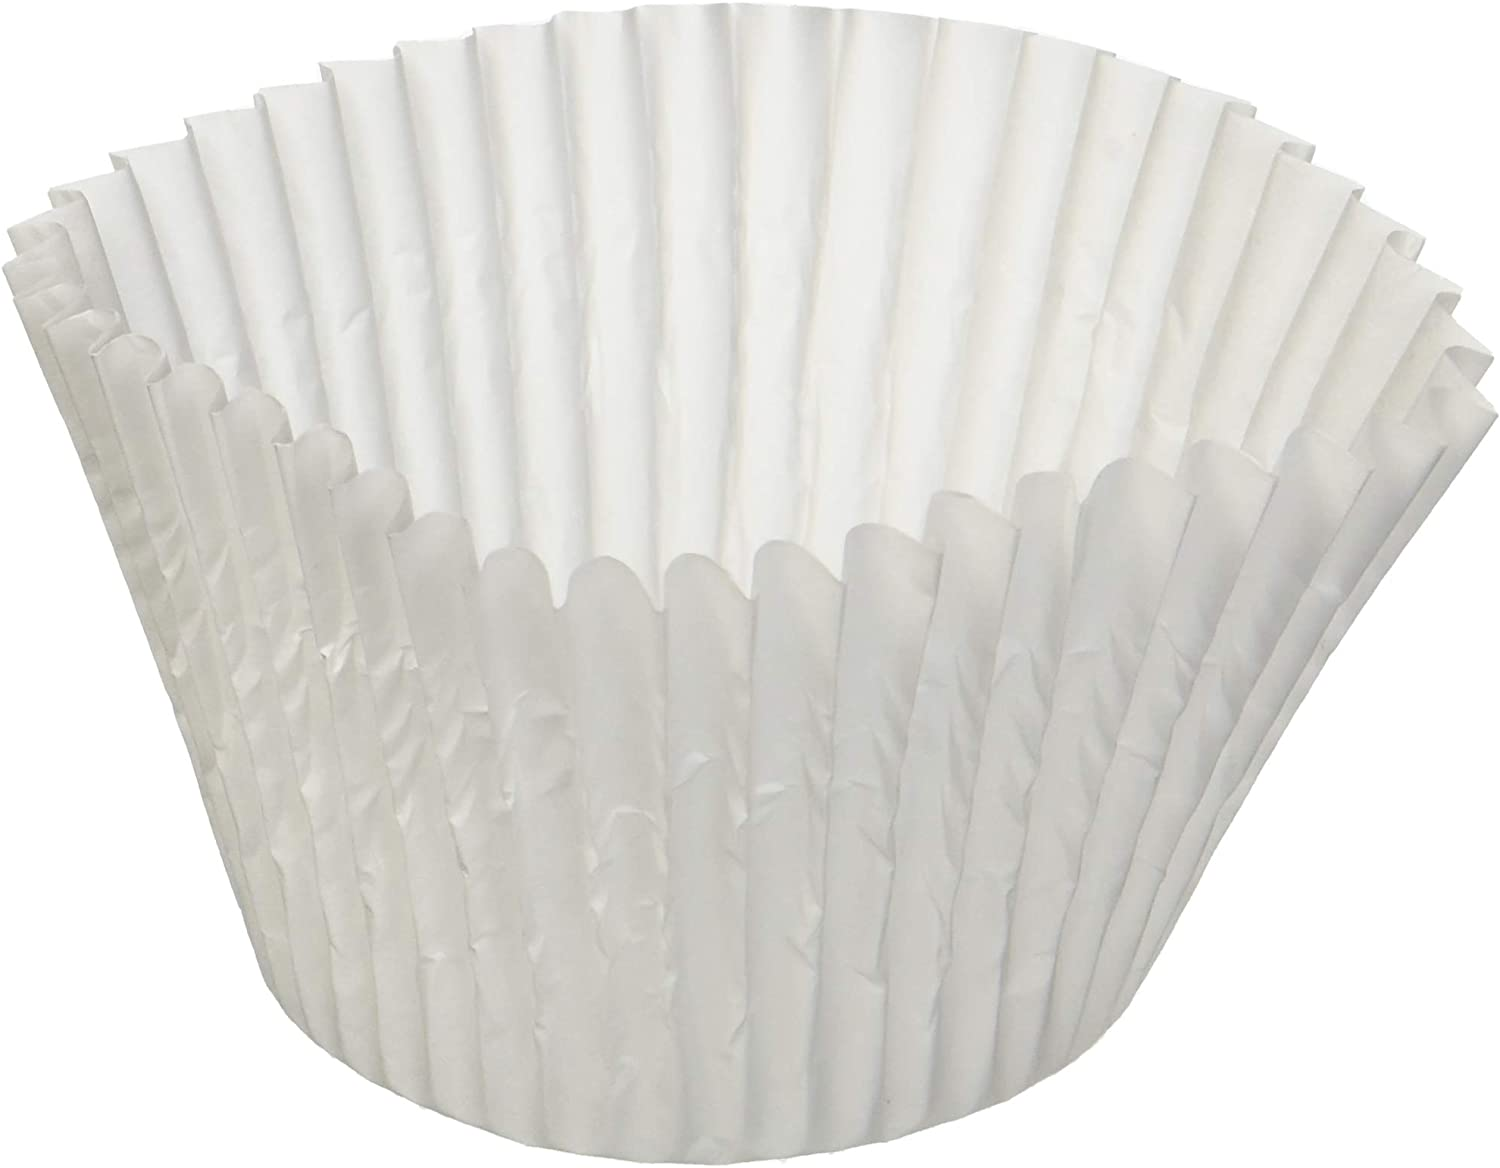 "Reynolds Quality Standard Size 6"" White Cupcake Paper - Baking Cup - 1 Pack of 500 Cup Liners"